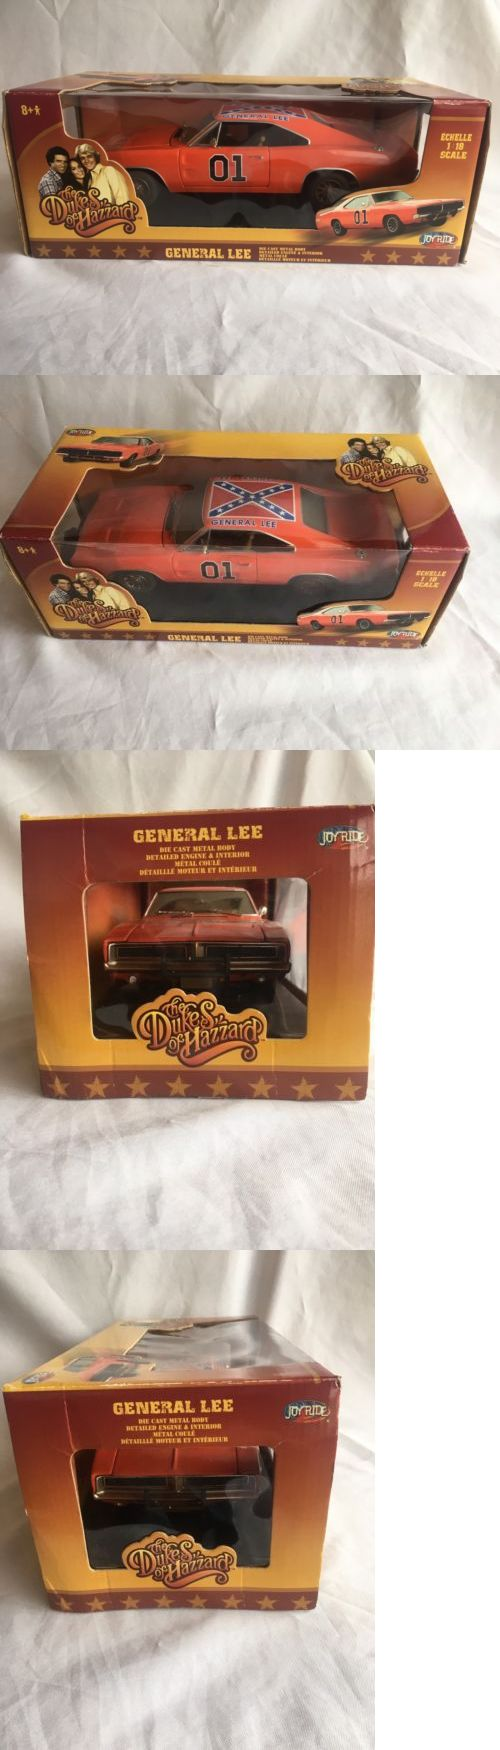 Dukes of Hazzard 20908: Joyride Dukes Of Hazard General Lee 1969 Dodge Charger Die Cast 1:18 Scale Nib -> BUY IT NOW ONLY: $92.99 on eBay!